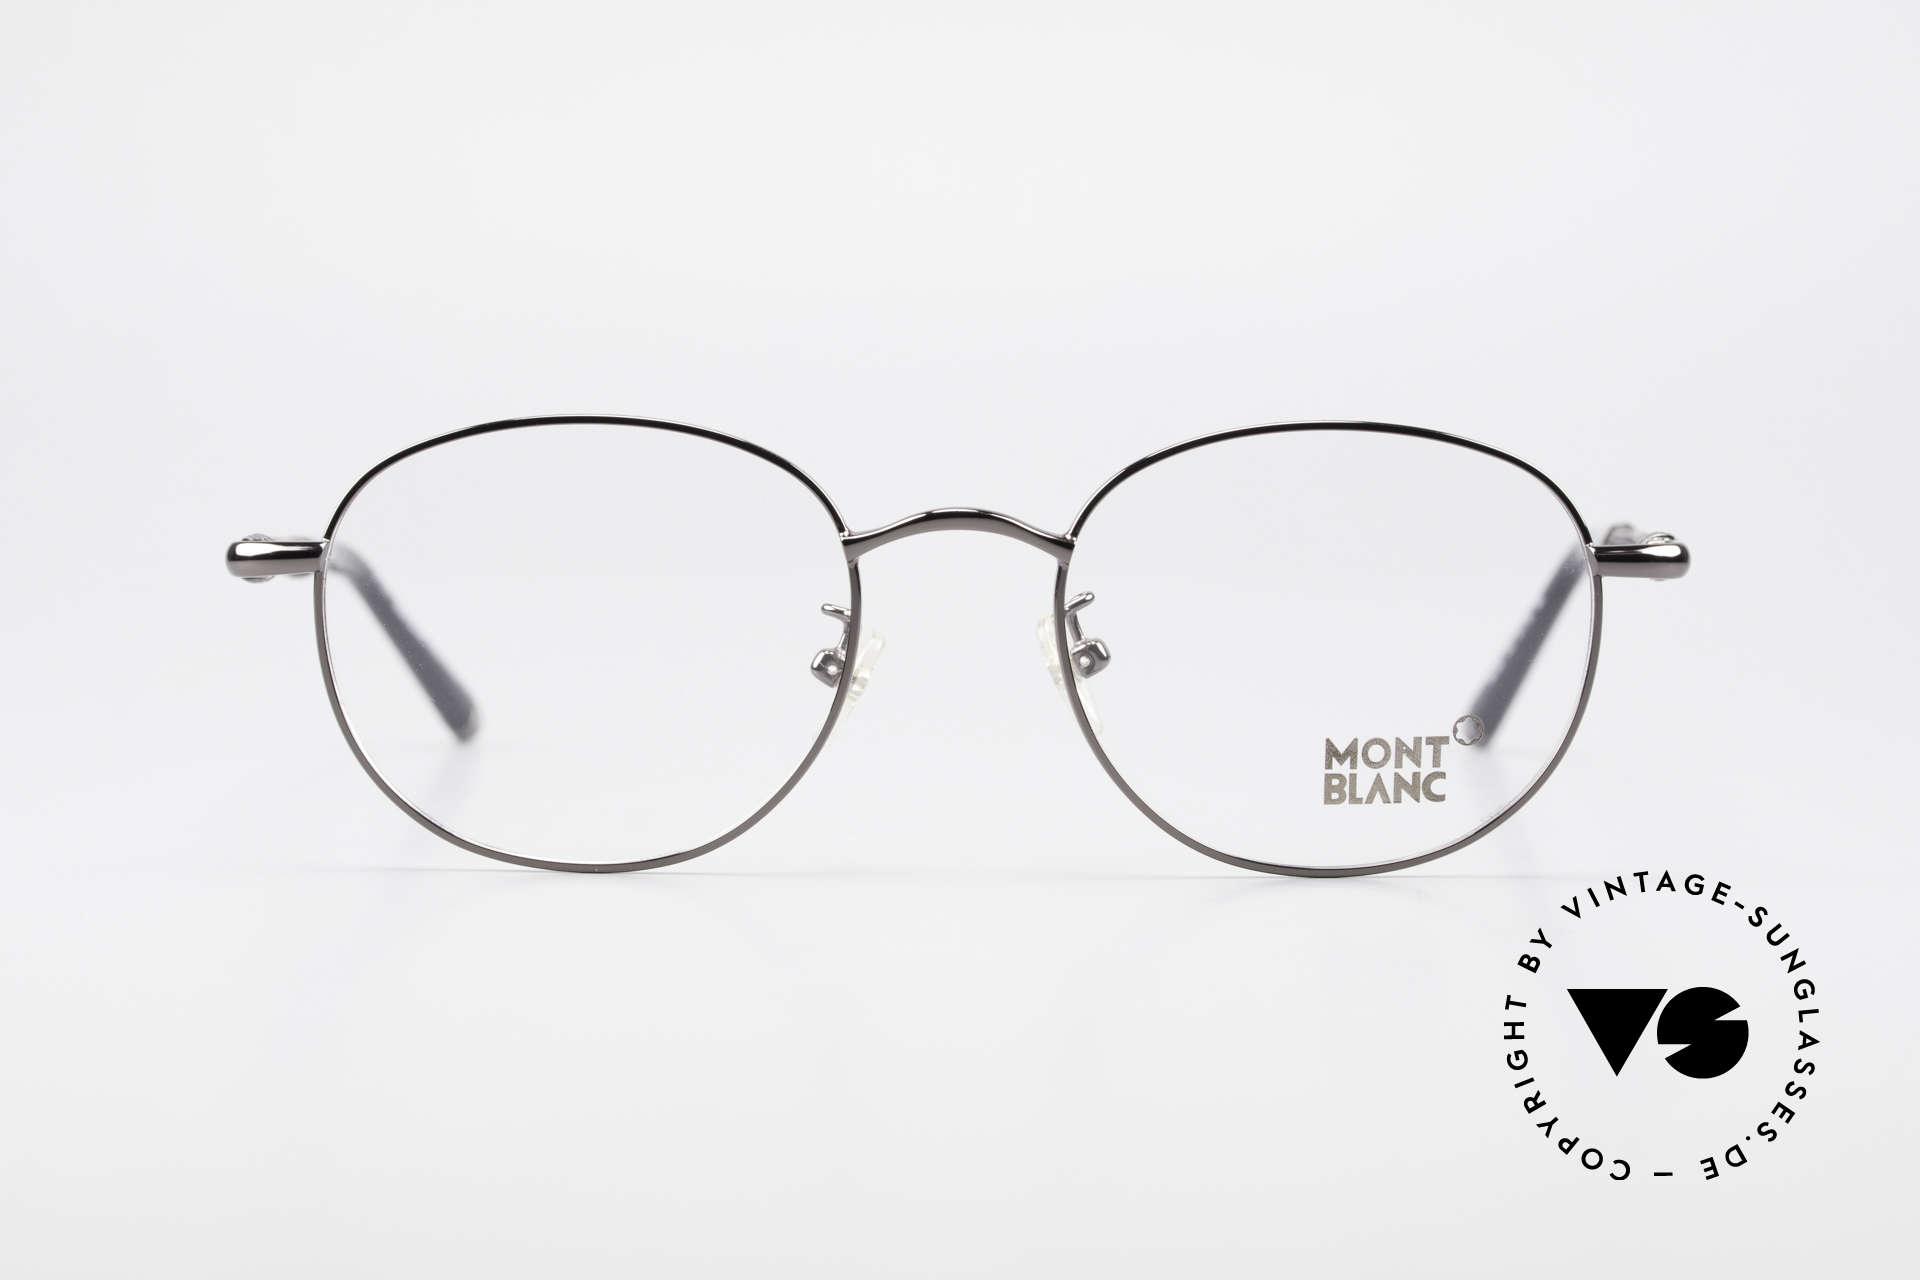 Montblanc MB392 Luxury Panto Frame Gunmetal, top-notch craftsmanship with flexible spring hinges, Made for Men and Women